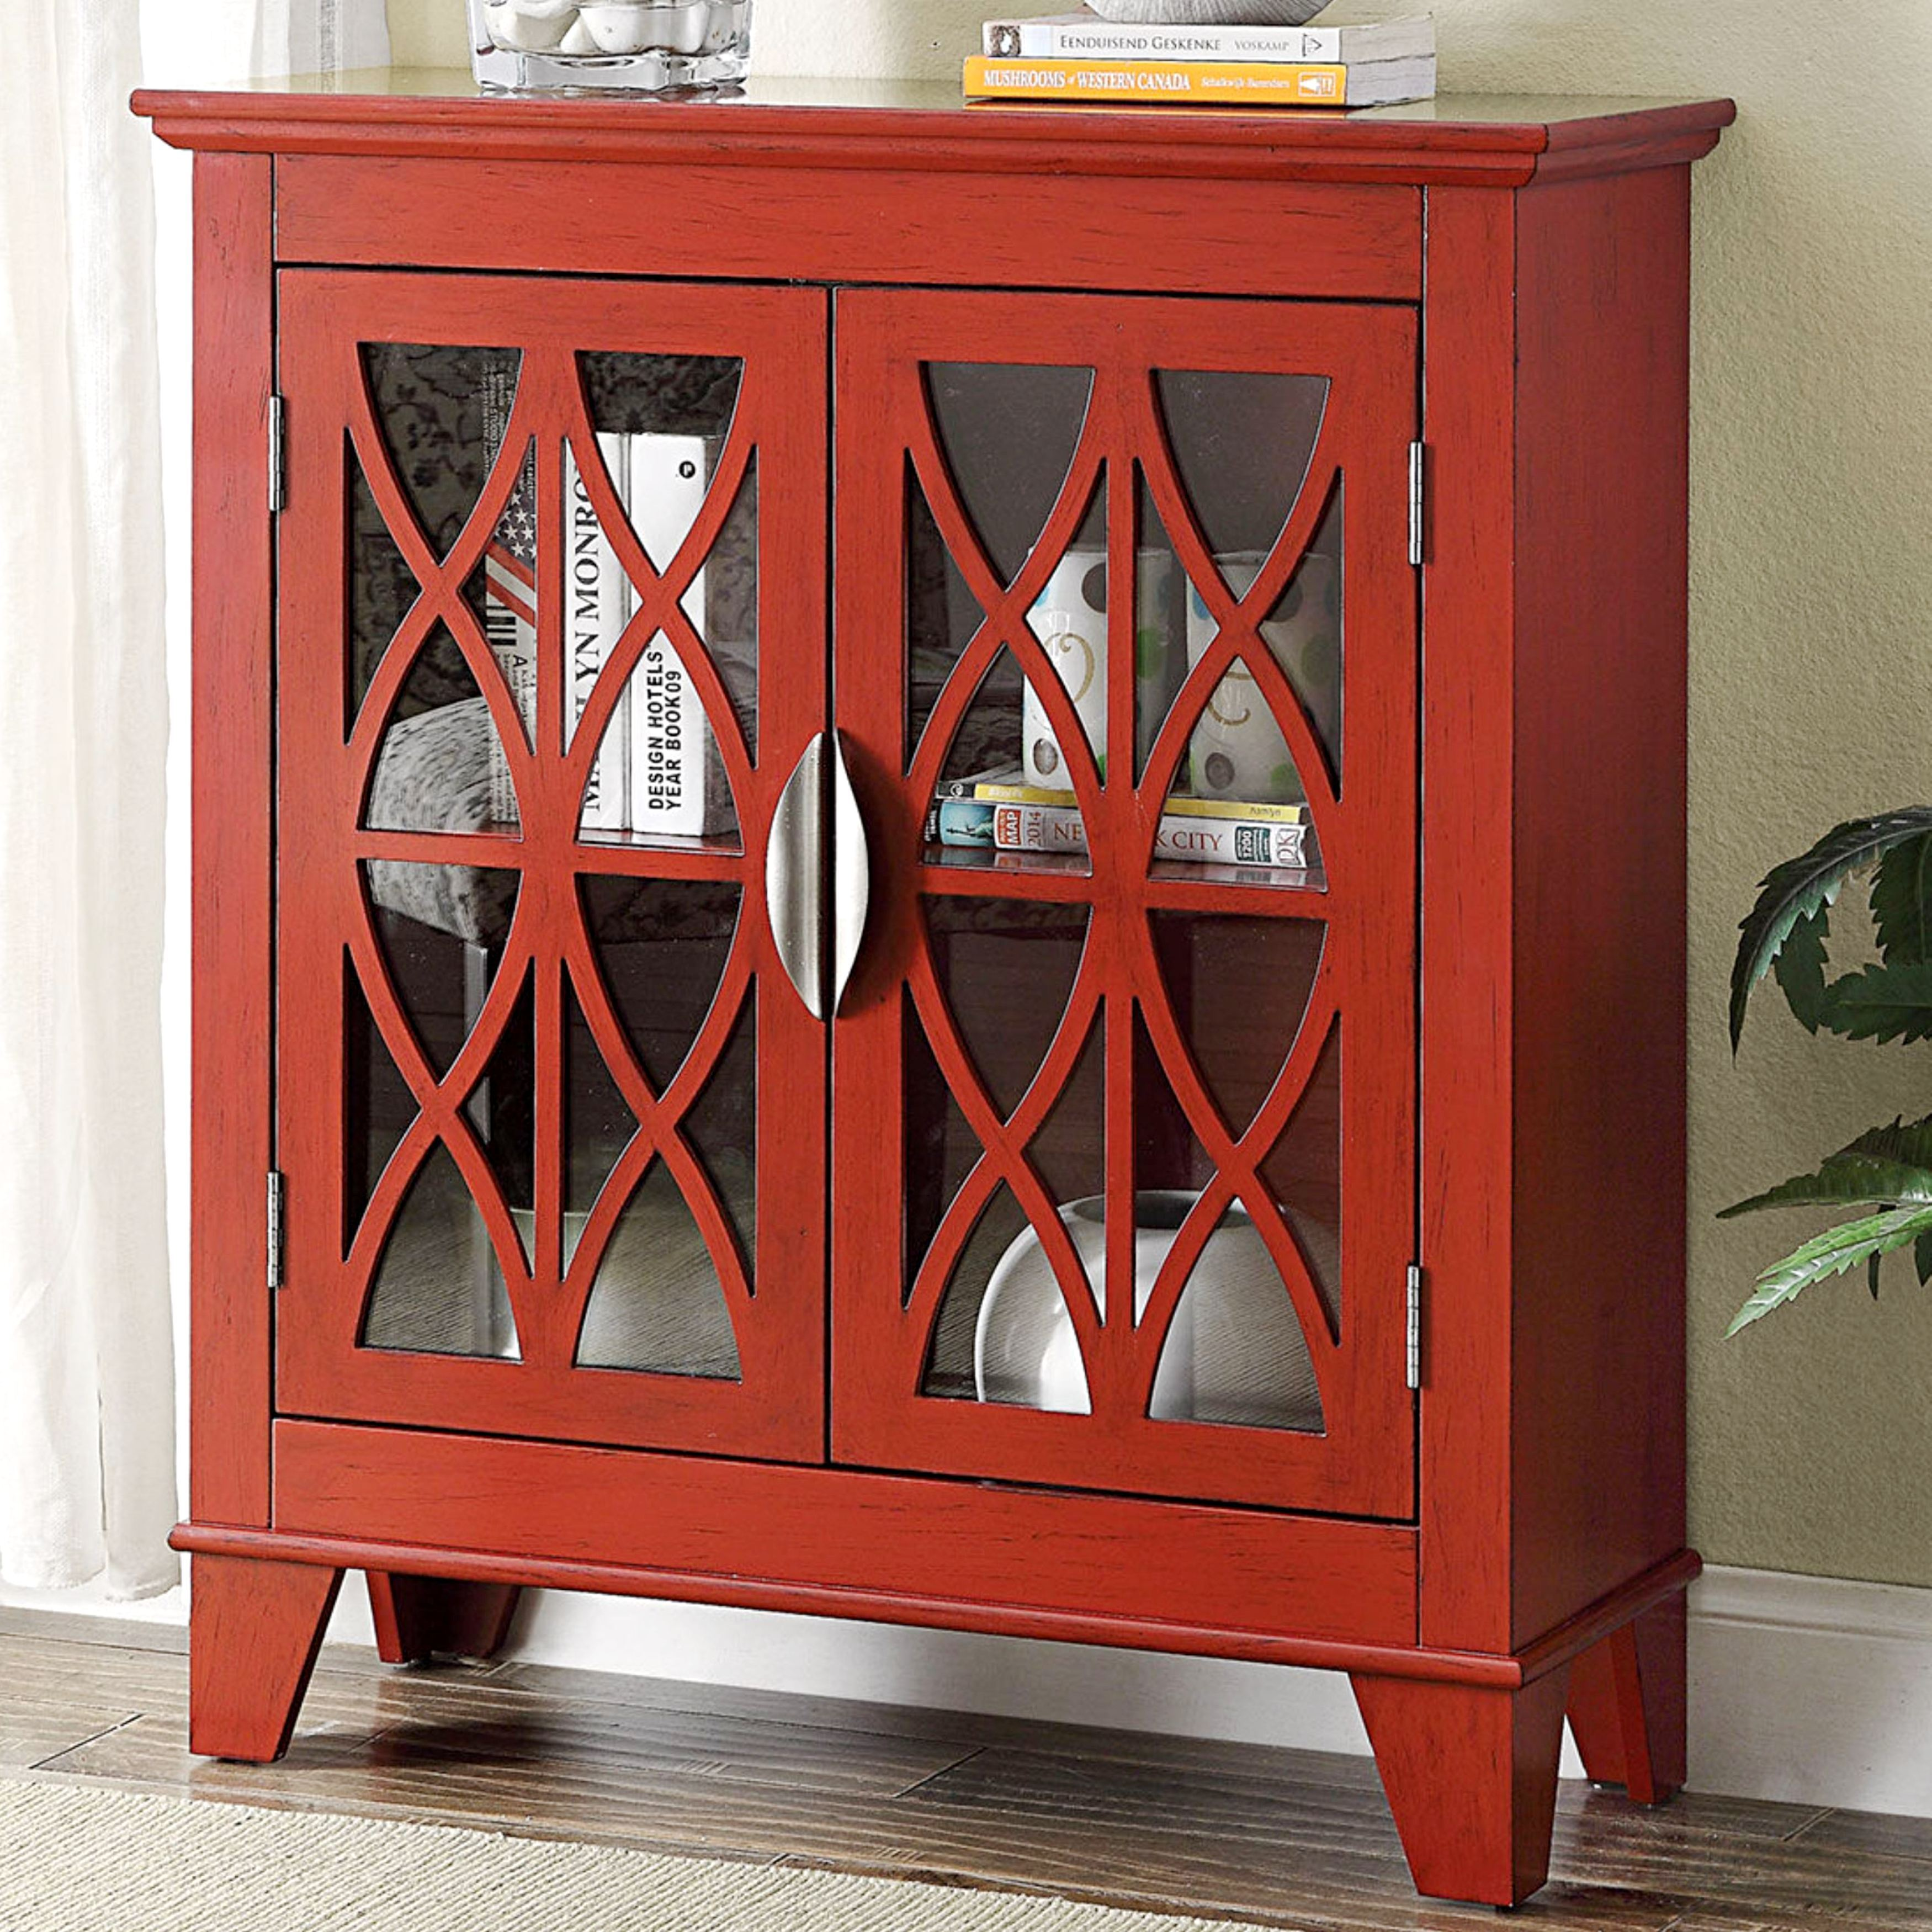 transitional design red accent cabinet with decorative glass doors table free shipping today best drum seat desk drawers cabinets for living room small bedside lamps shaped